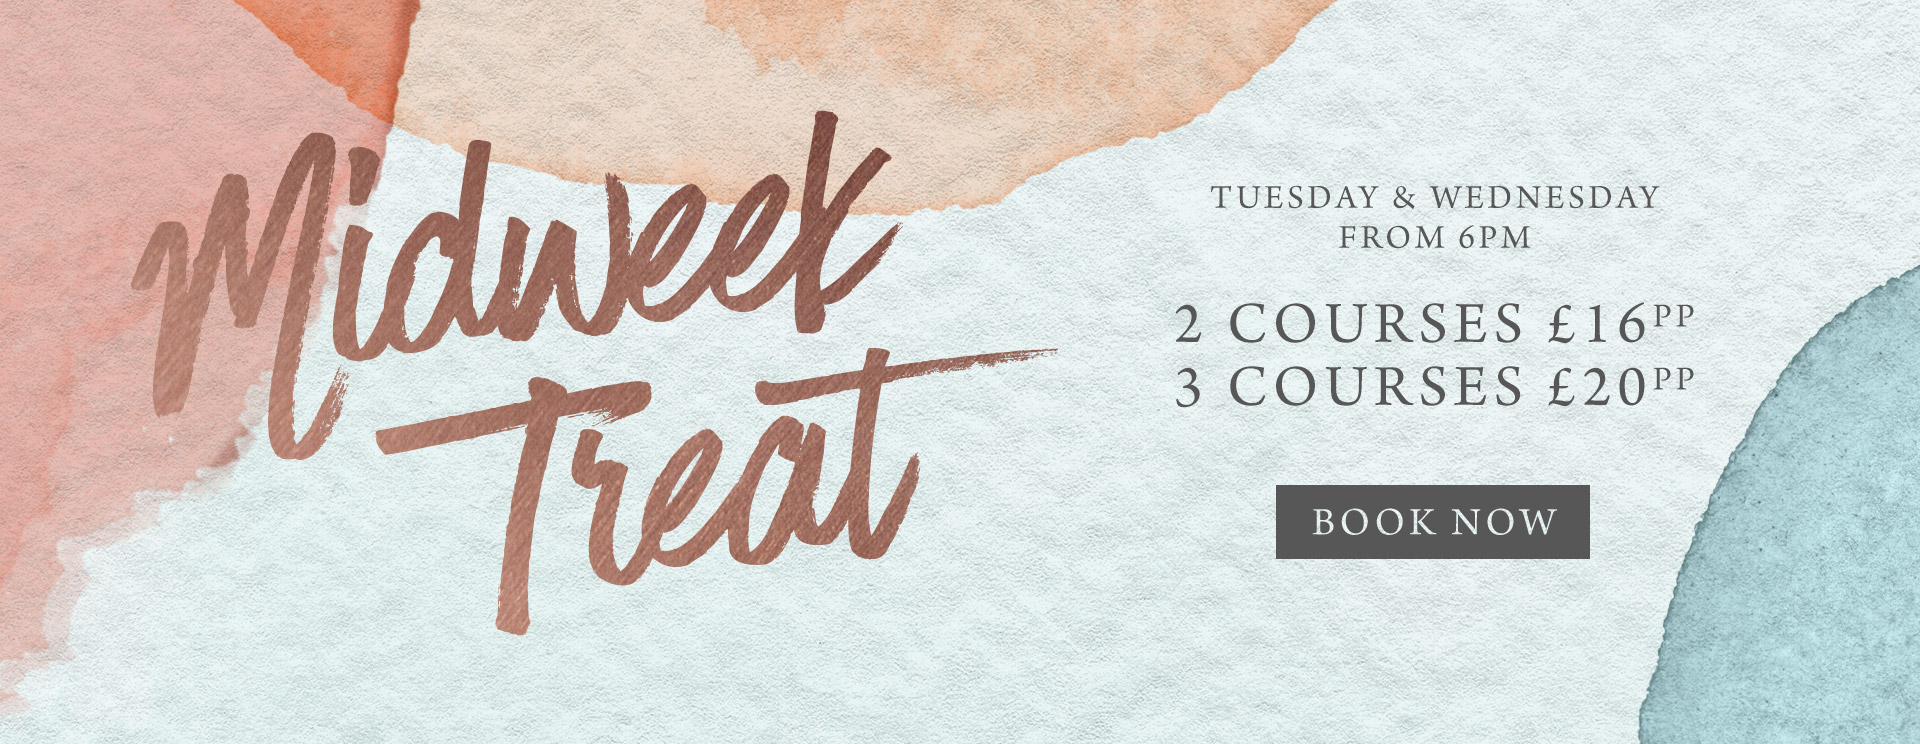 Midweek treat at The Warren - Book now